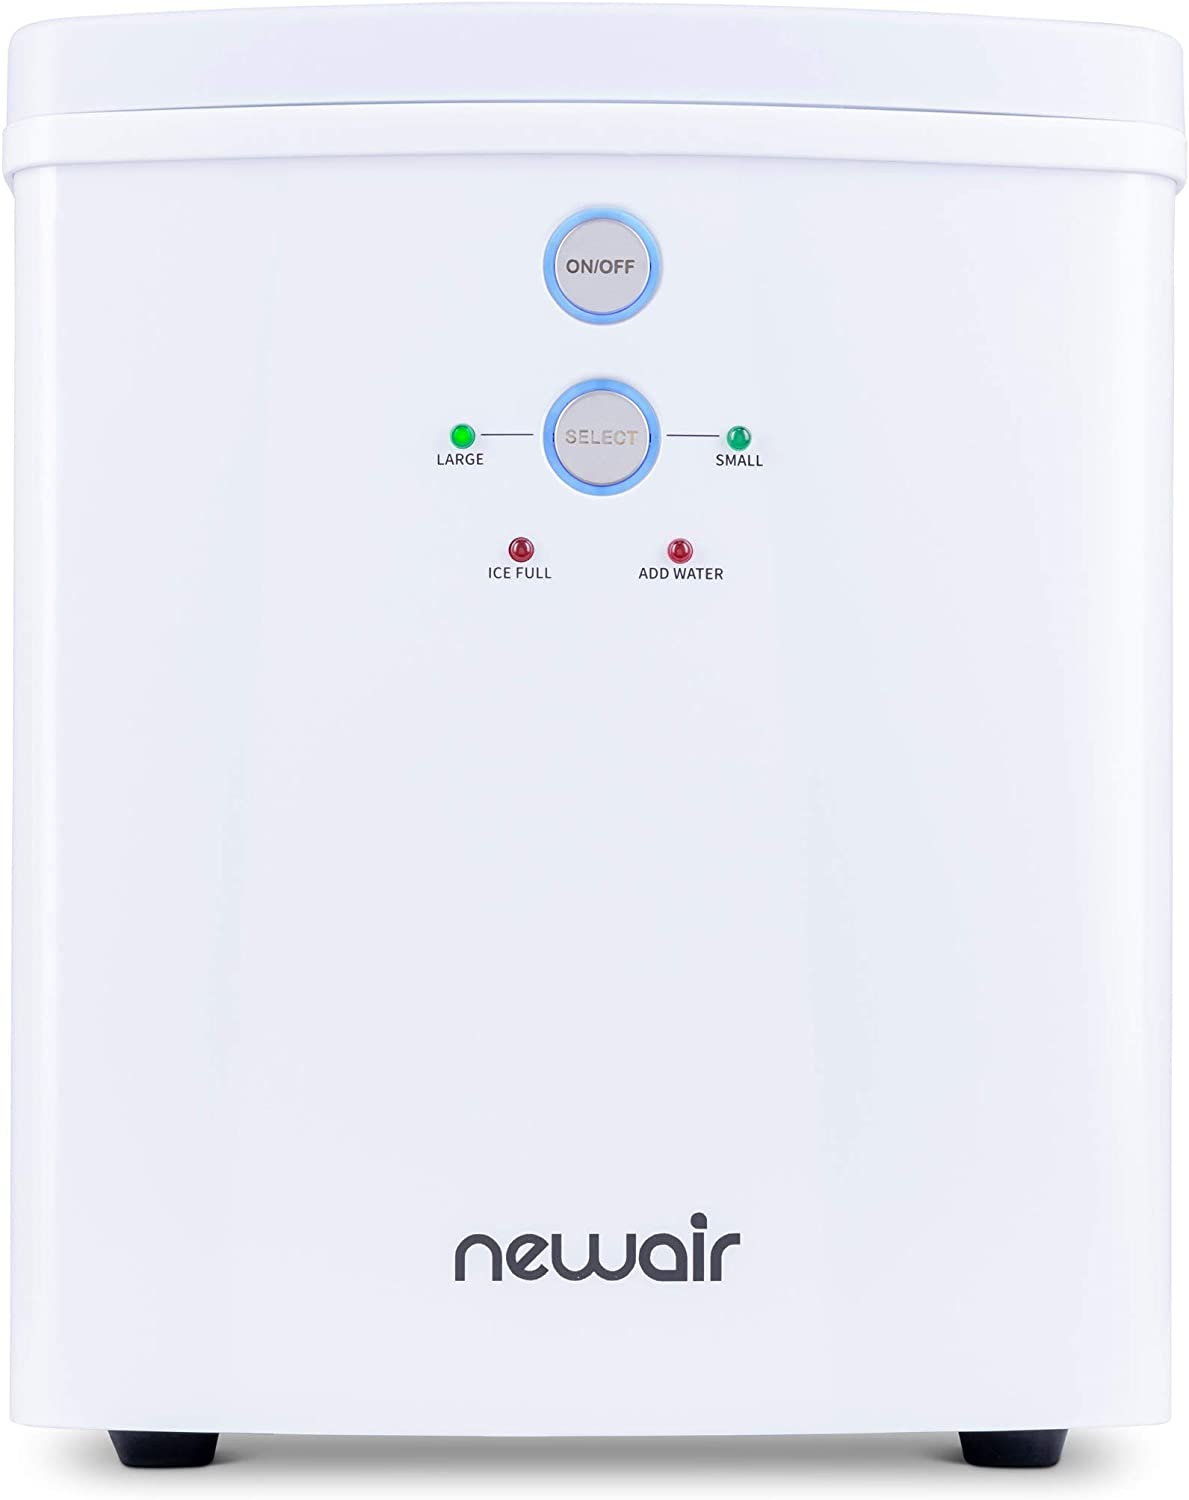 NewAir Portable Maker 33 lb 2 Ice Size Bullets Daily, Perfect Machine for Countertops, NIM033WH00, White